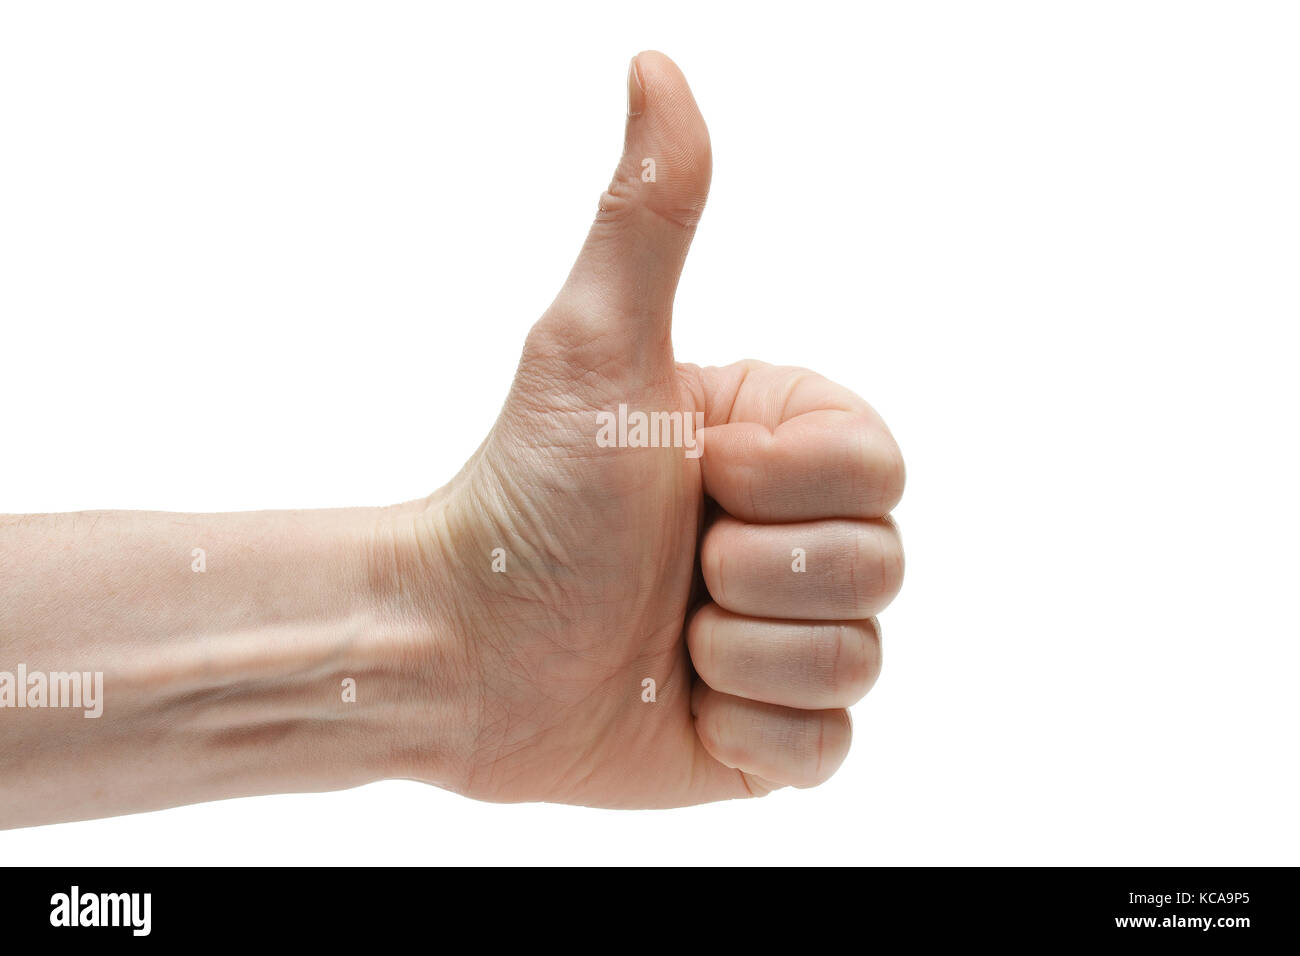 Human hand with finger up. Thumb up. - Stock Image